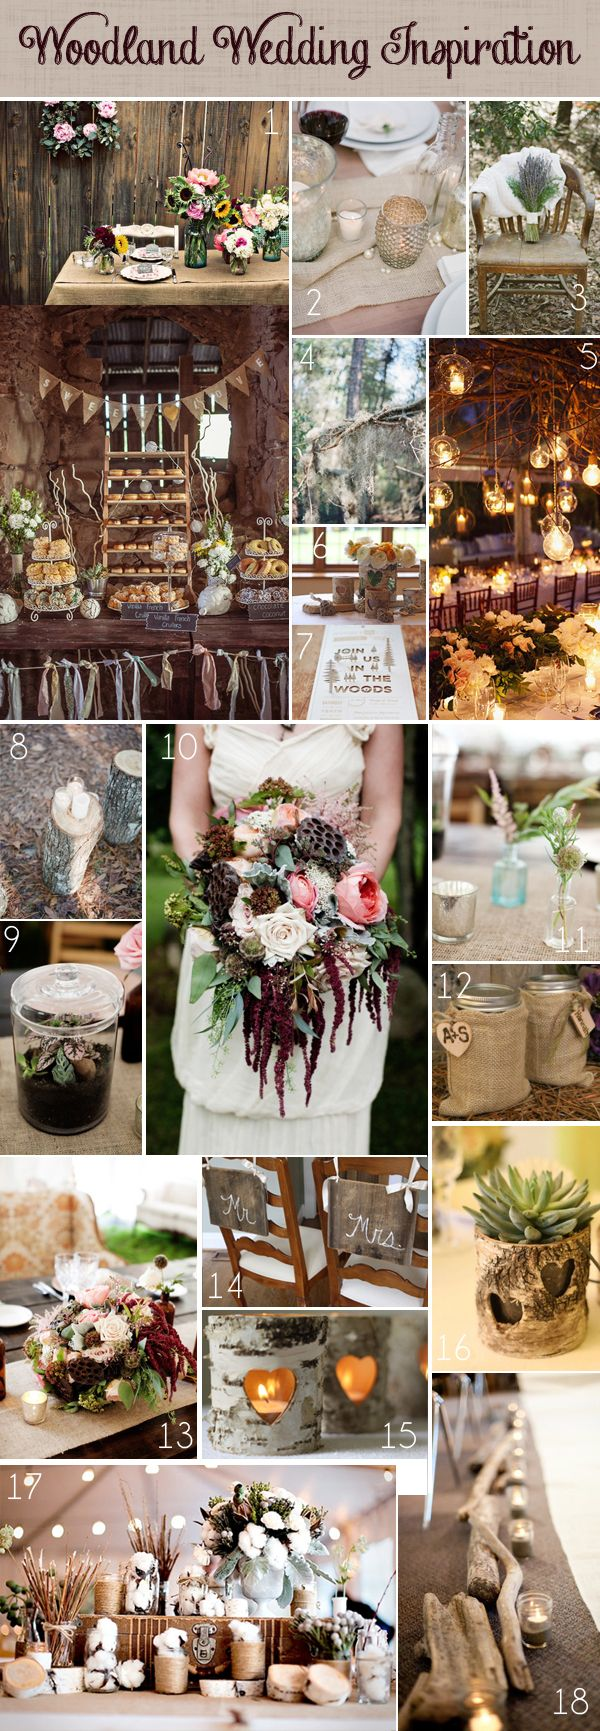 Wedding Table Decorations Inspiration | The Wedding of my Dreams Blogwoodland wedding